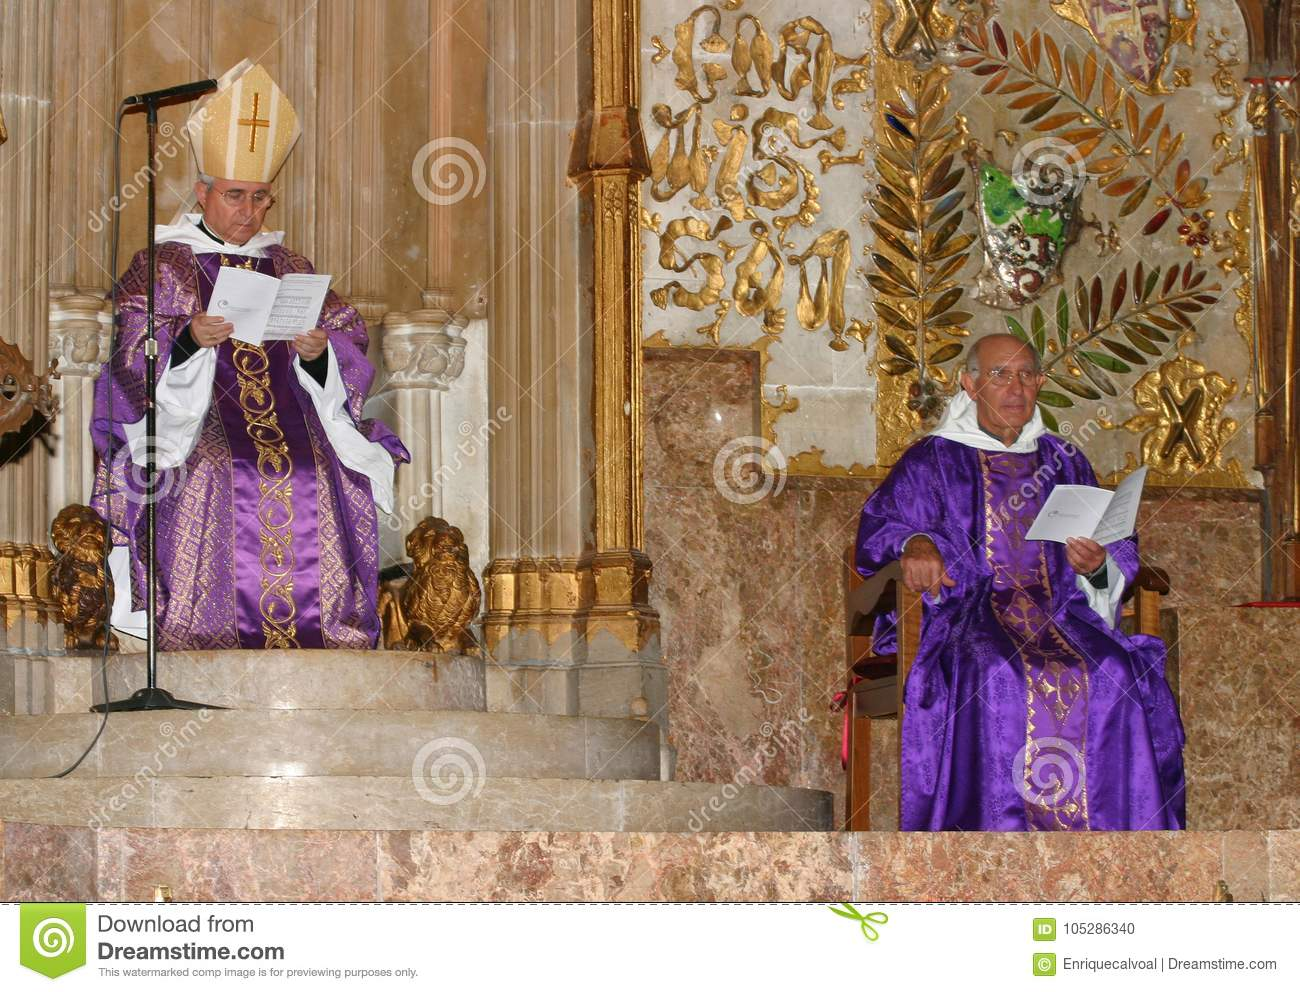 Bishop and Priest at mass in Palma de Mallorca cathedral